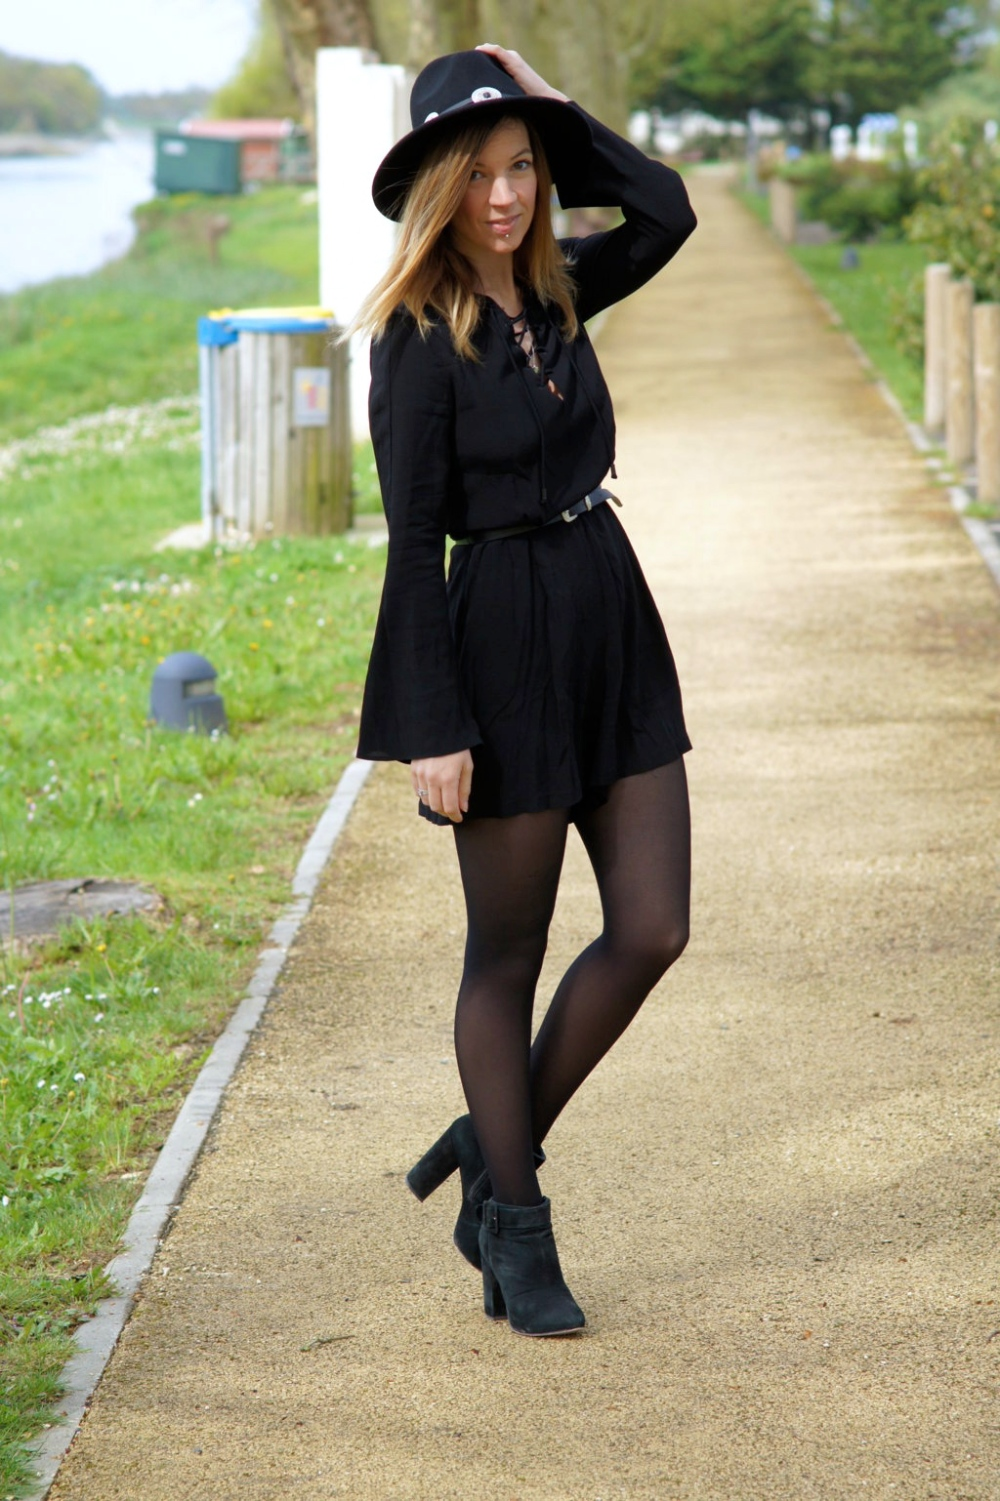 DSC02481 (FILEminimizer)